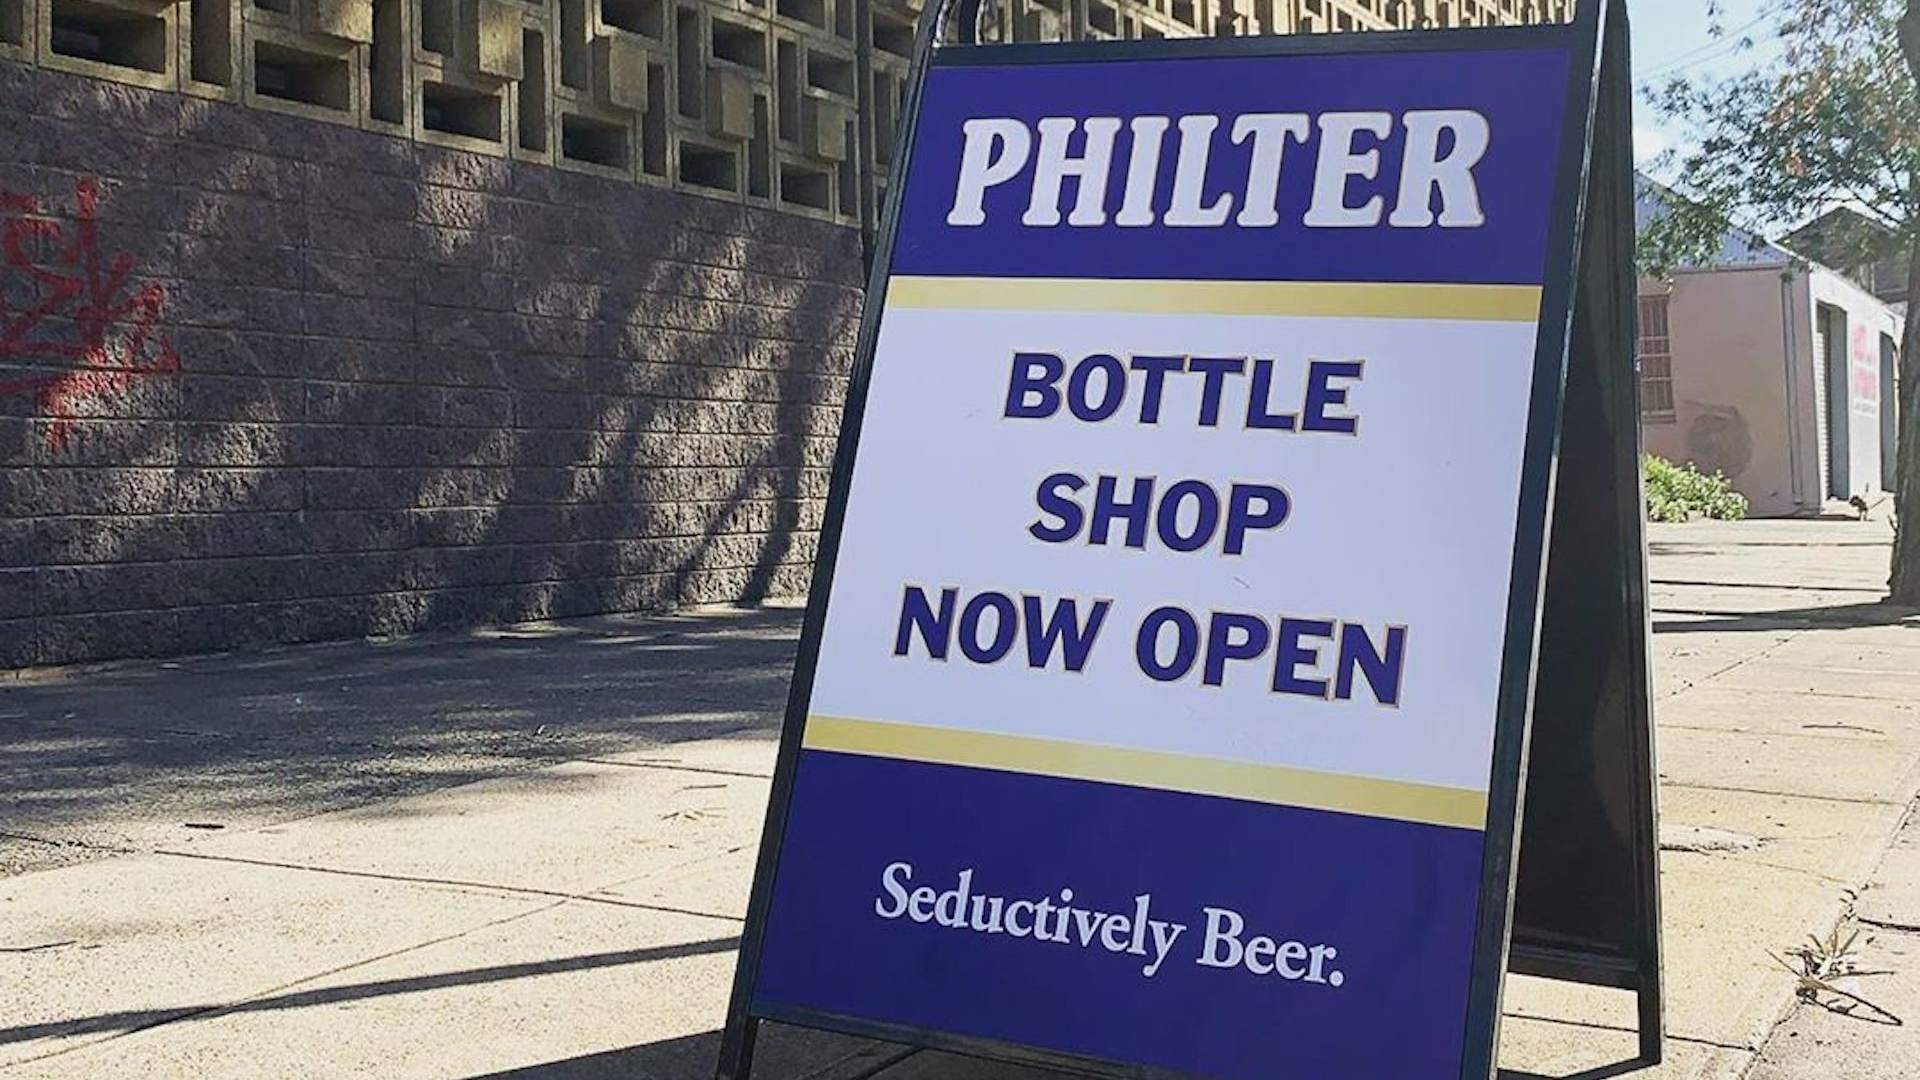 Philter Has Opened a Bottle Shop in an Old Marrickville Yoghurt Factory